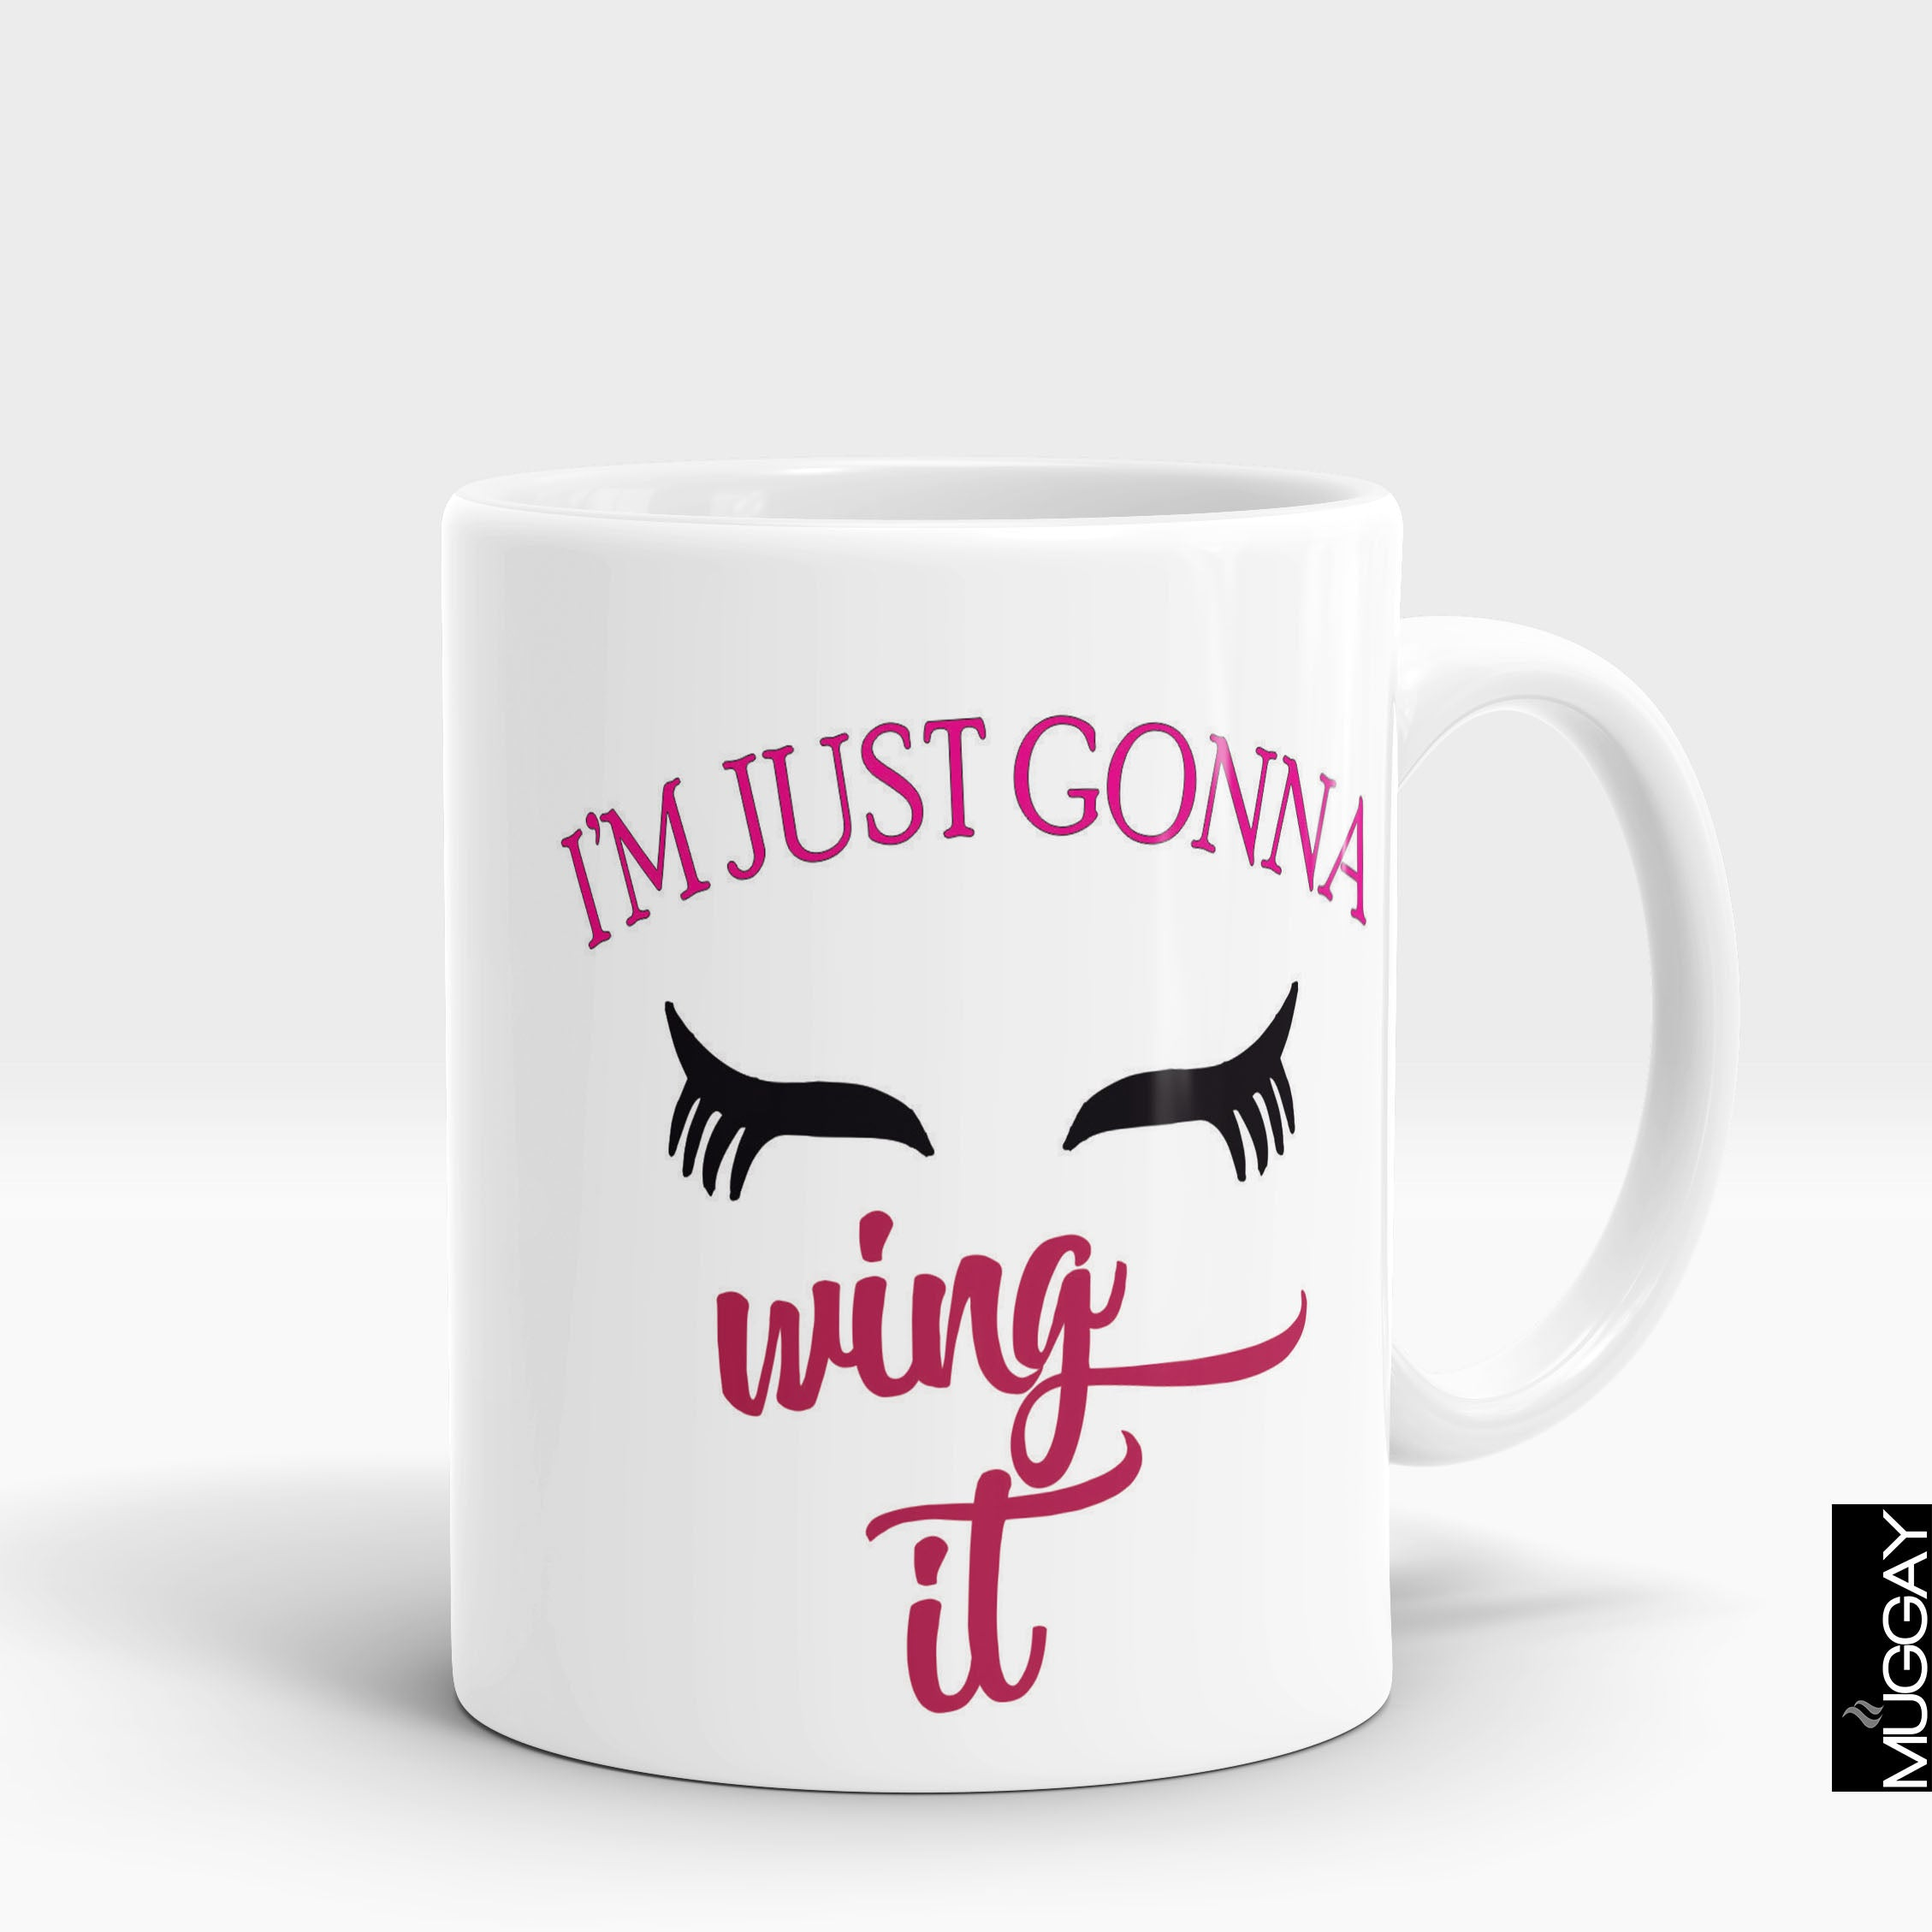 Makeup theme mugs -8